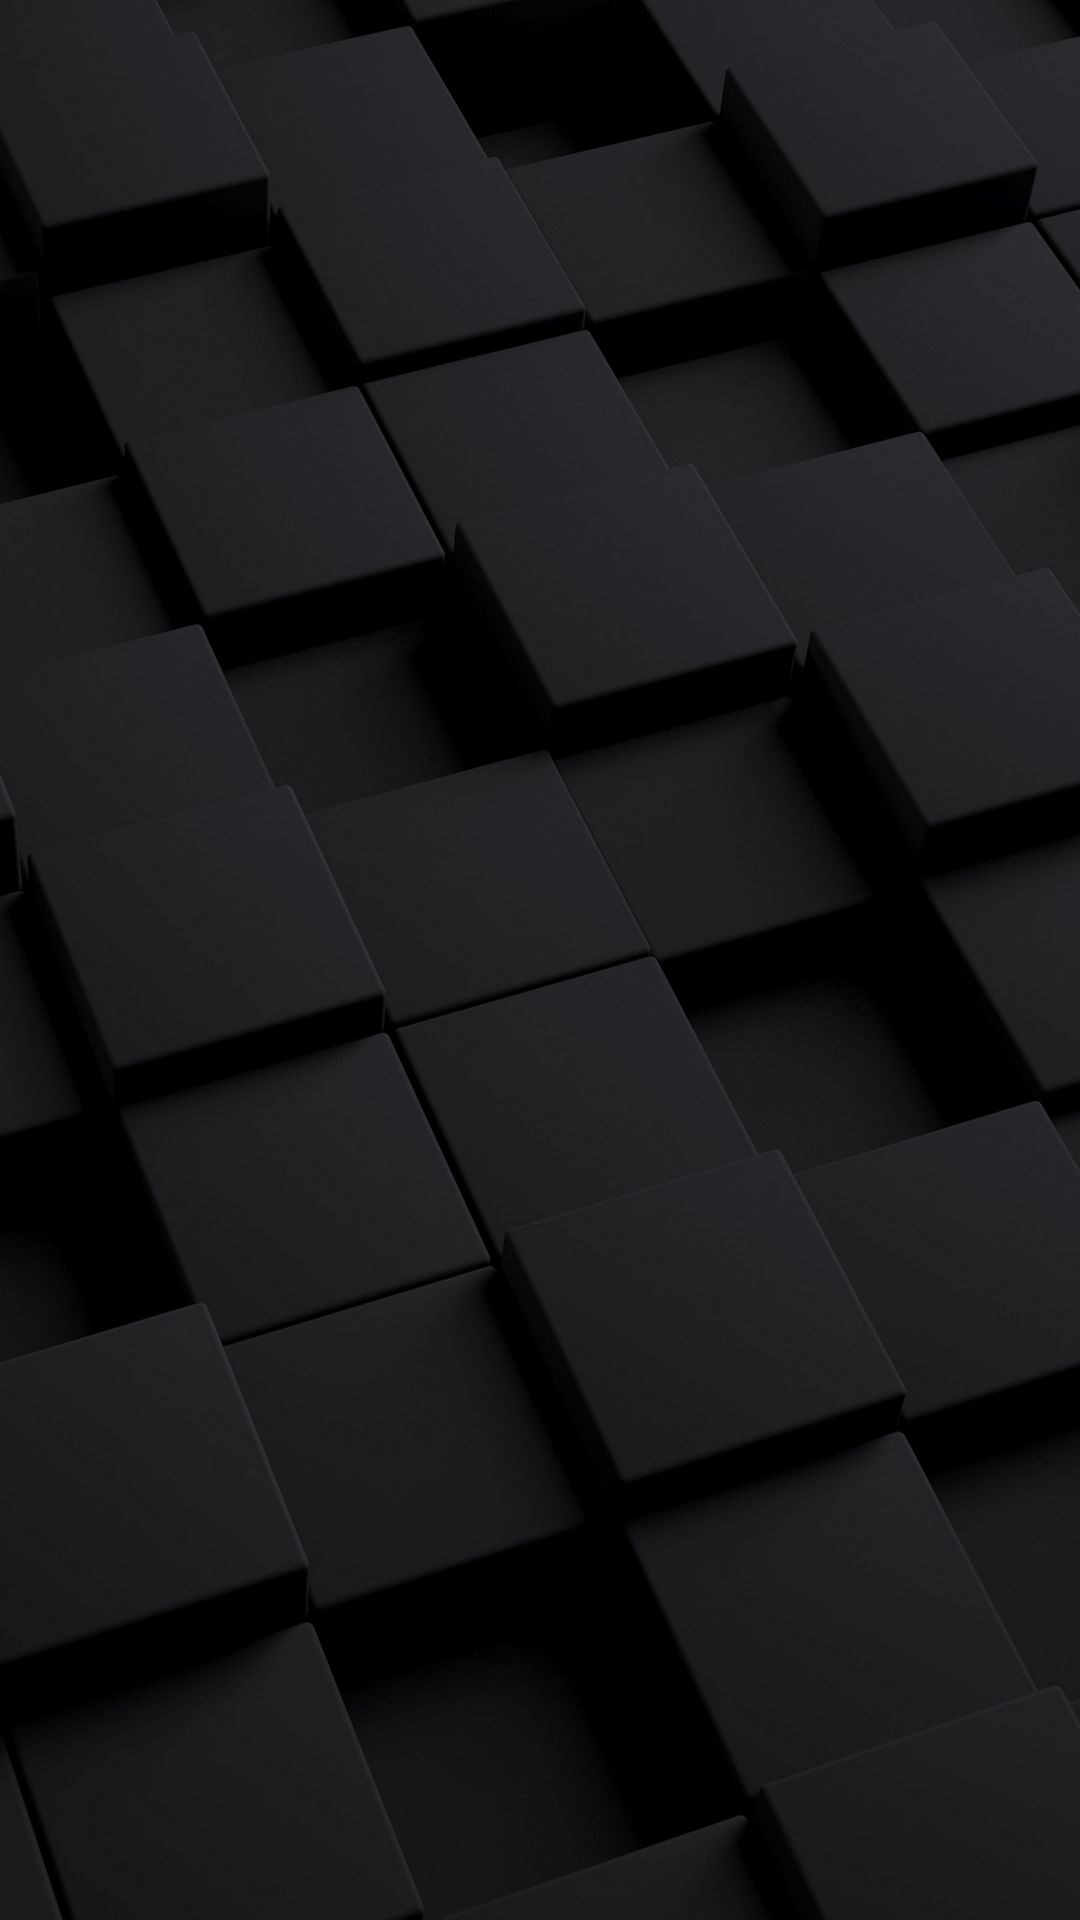 1080x1920 Wallpaper cube, dark, texture, shape